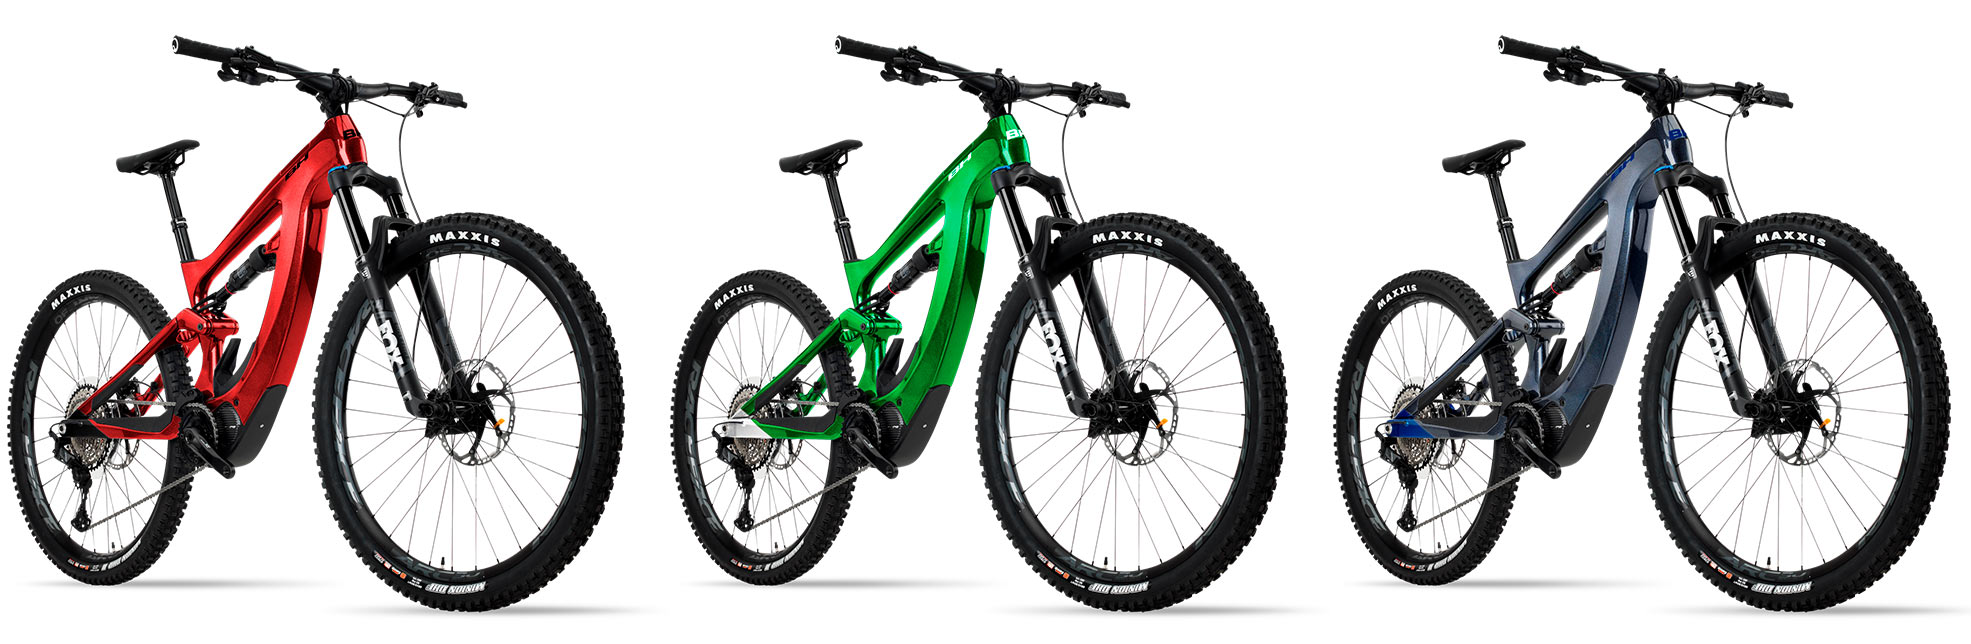 2021 BH XTEP full suspension electric assist mountain bike color options